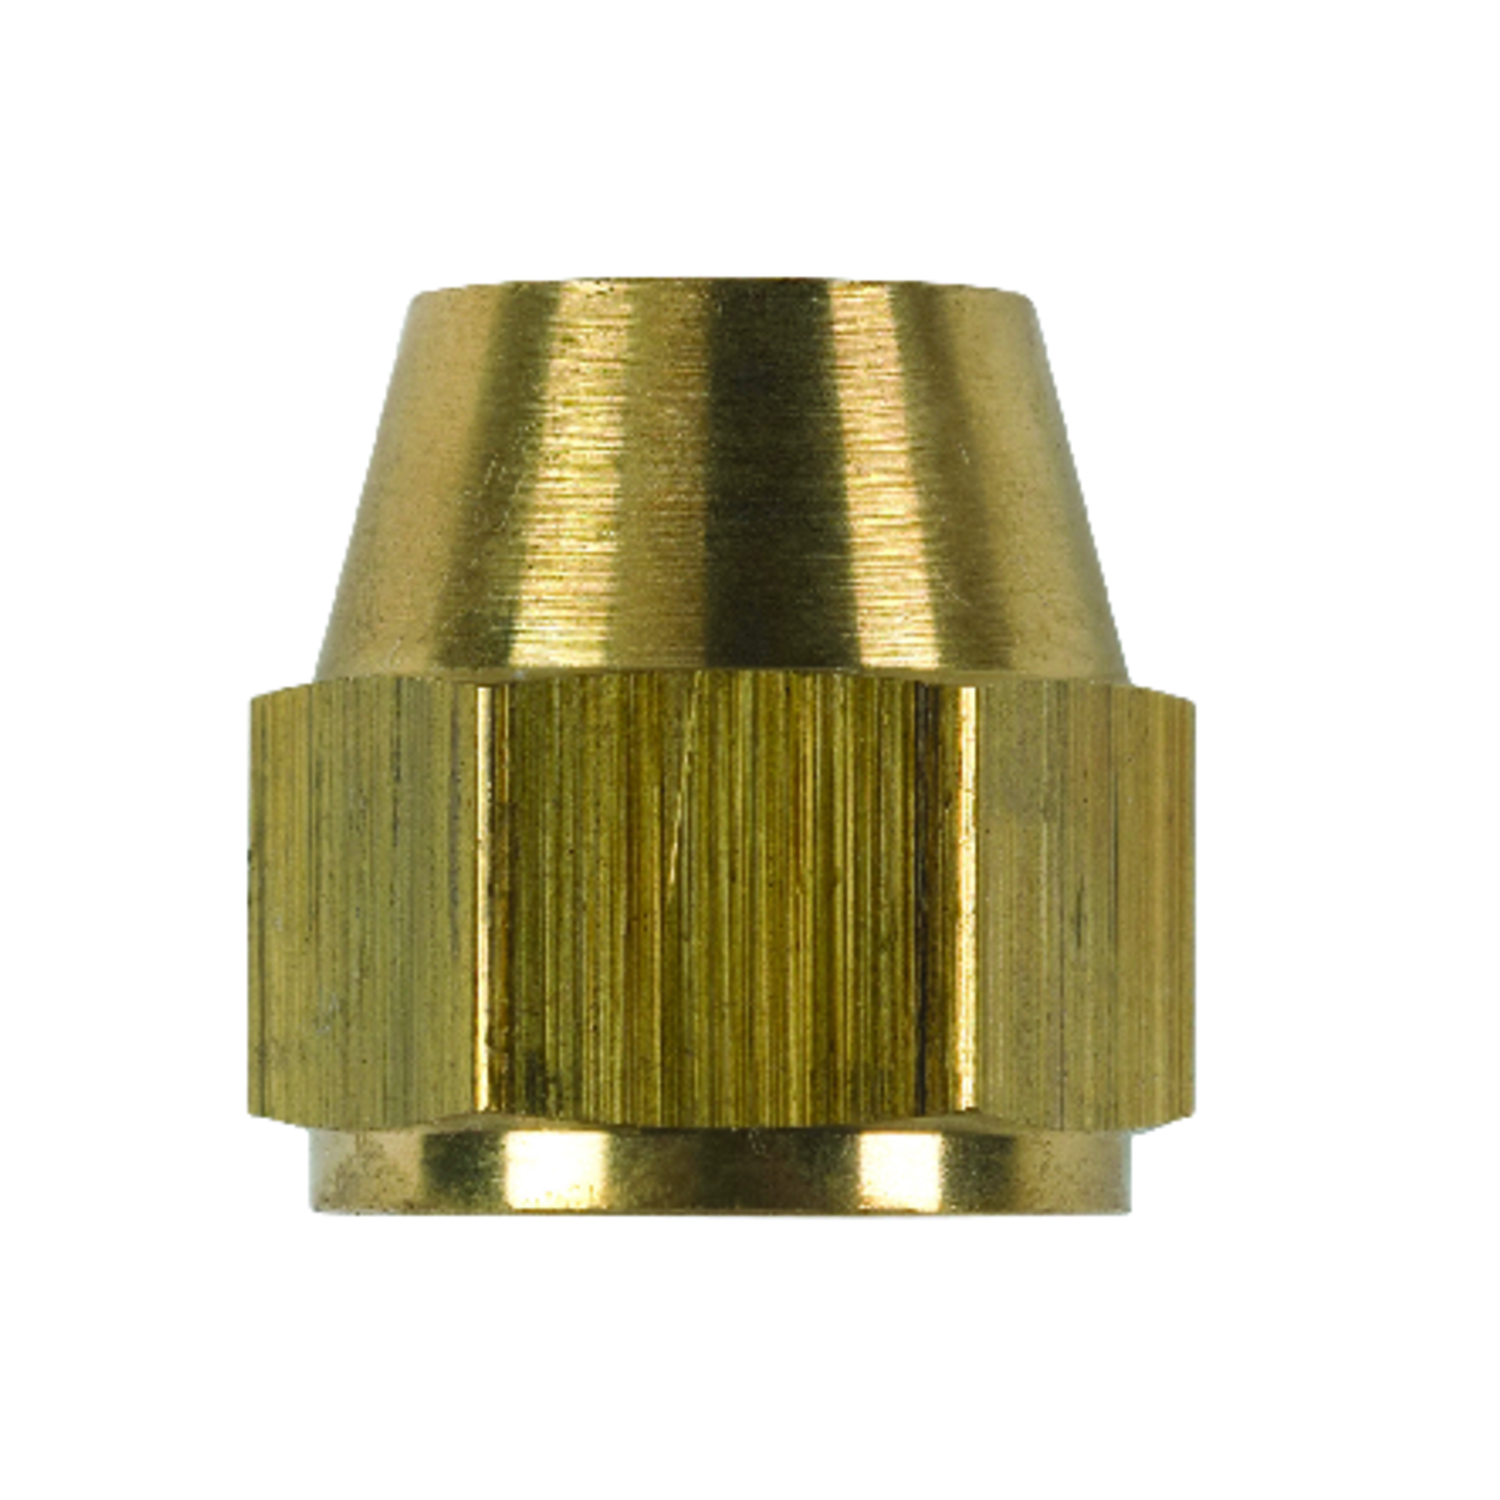 JMF  Brass  Bulk  5/16 in. Dia.